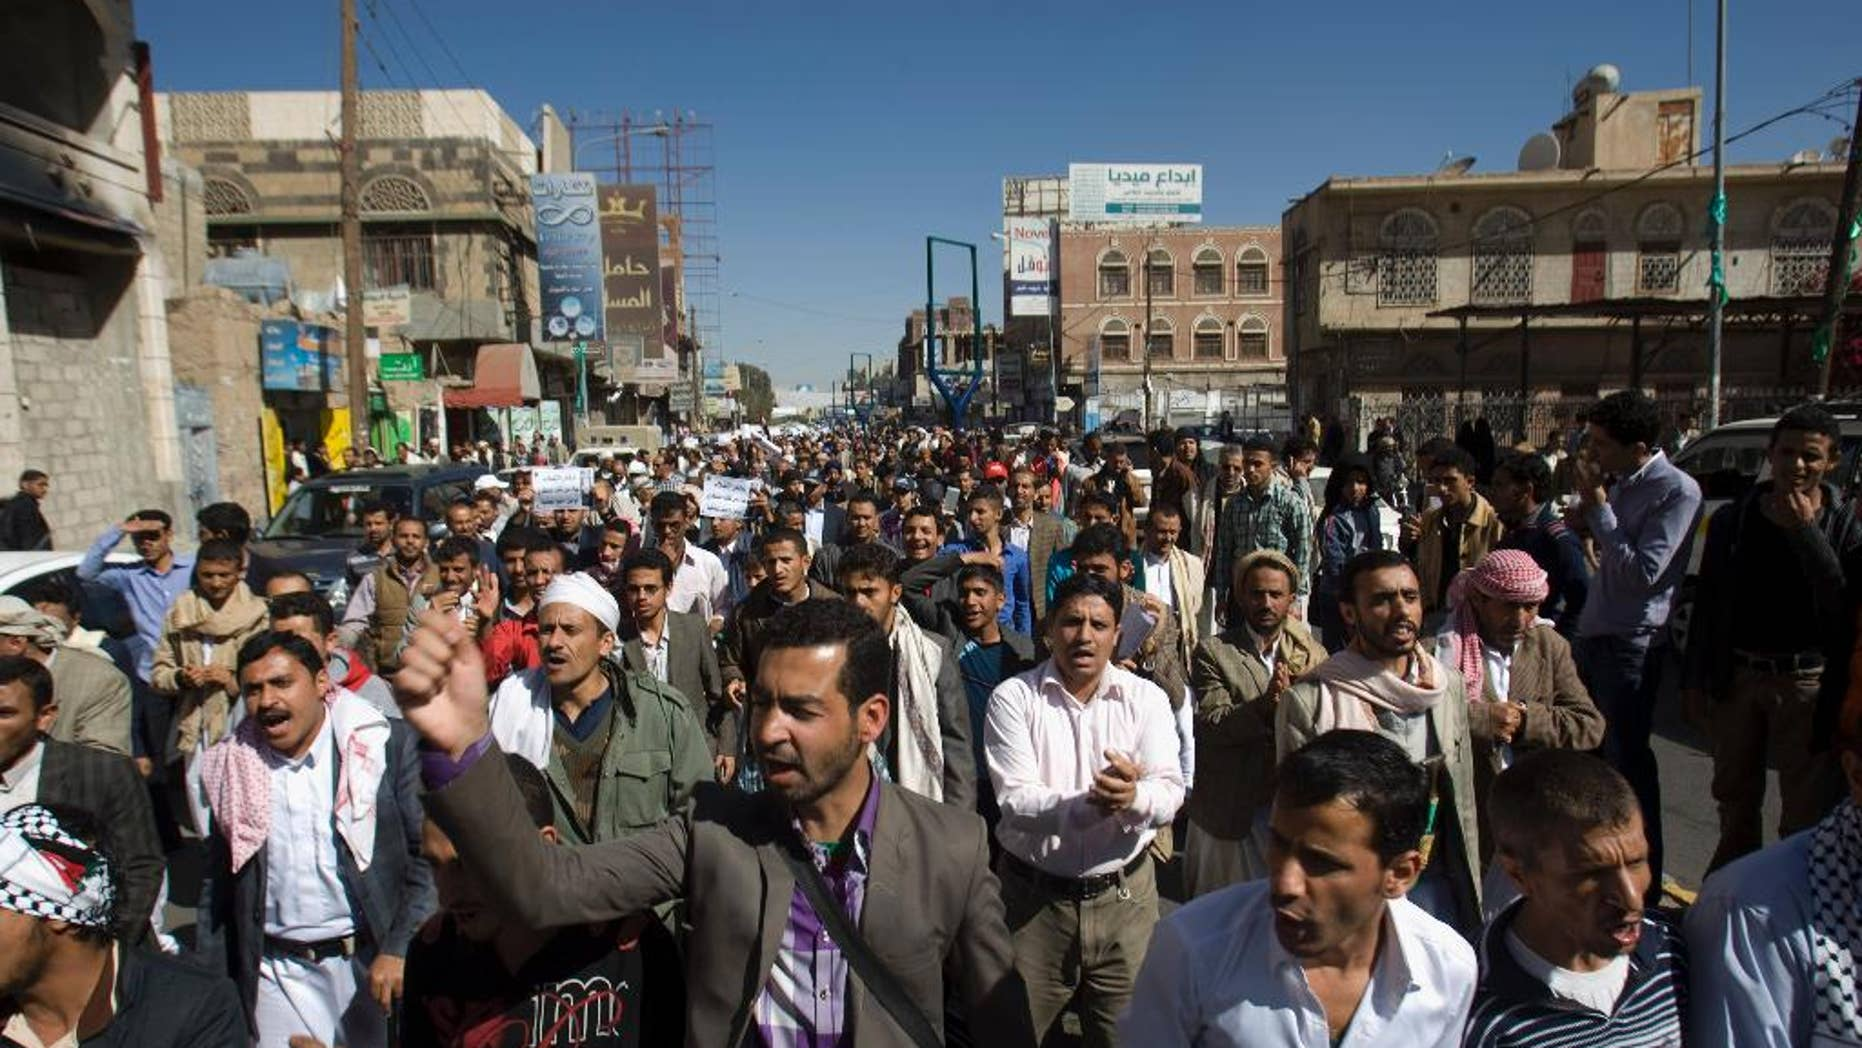 FILE - In this Saturday, Jan. 24, 2015 file photo, protesters chant slogans against Houthi Shiite rebels who hold the capital, Sanna, amid a power vacuum as they march on a street in Sanaa. A U.S. drone strike targeting al-Qaida in Yemen signals Washington's determination to keep fighting the militants despite political paralysis brought on by the minority Shiite power grab. But officials say an effective ground strategy to truly uproot the militants will have to await the emergence of a functioning local government that can act as an ally. (AP Photo/Hani Mohammed, File)